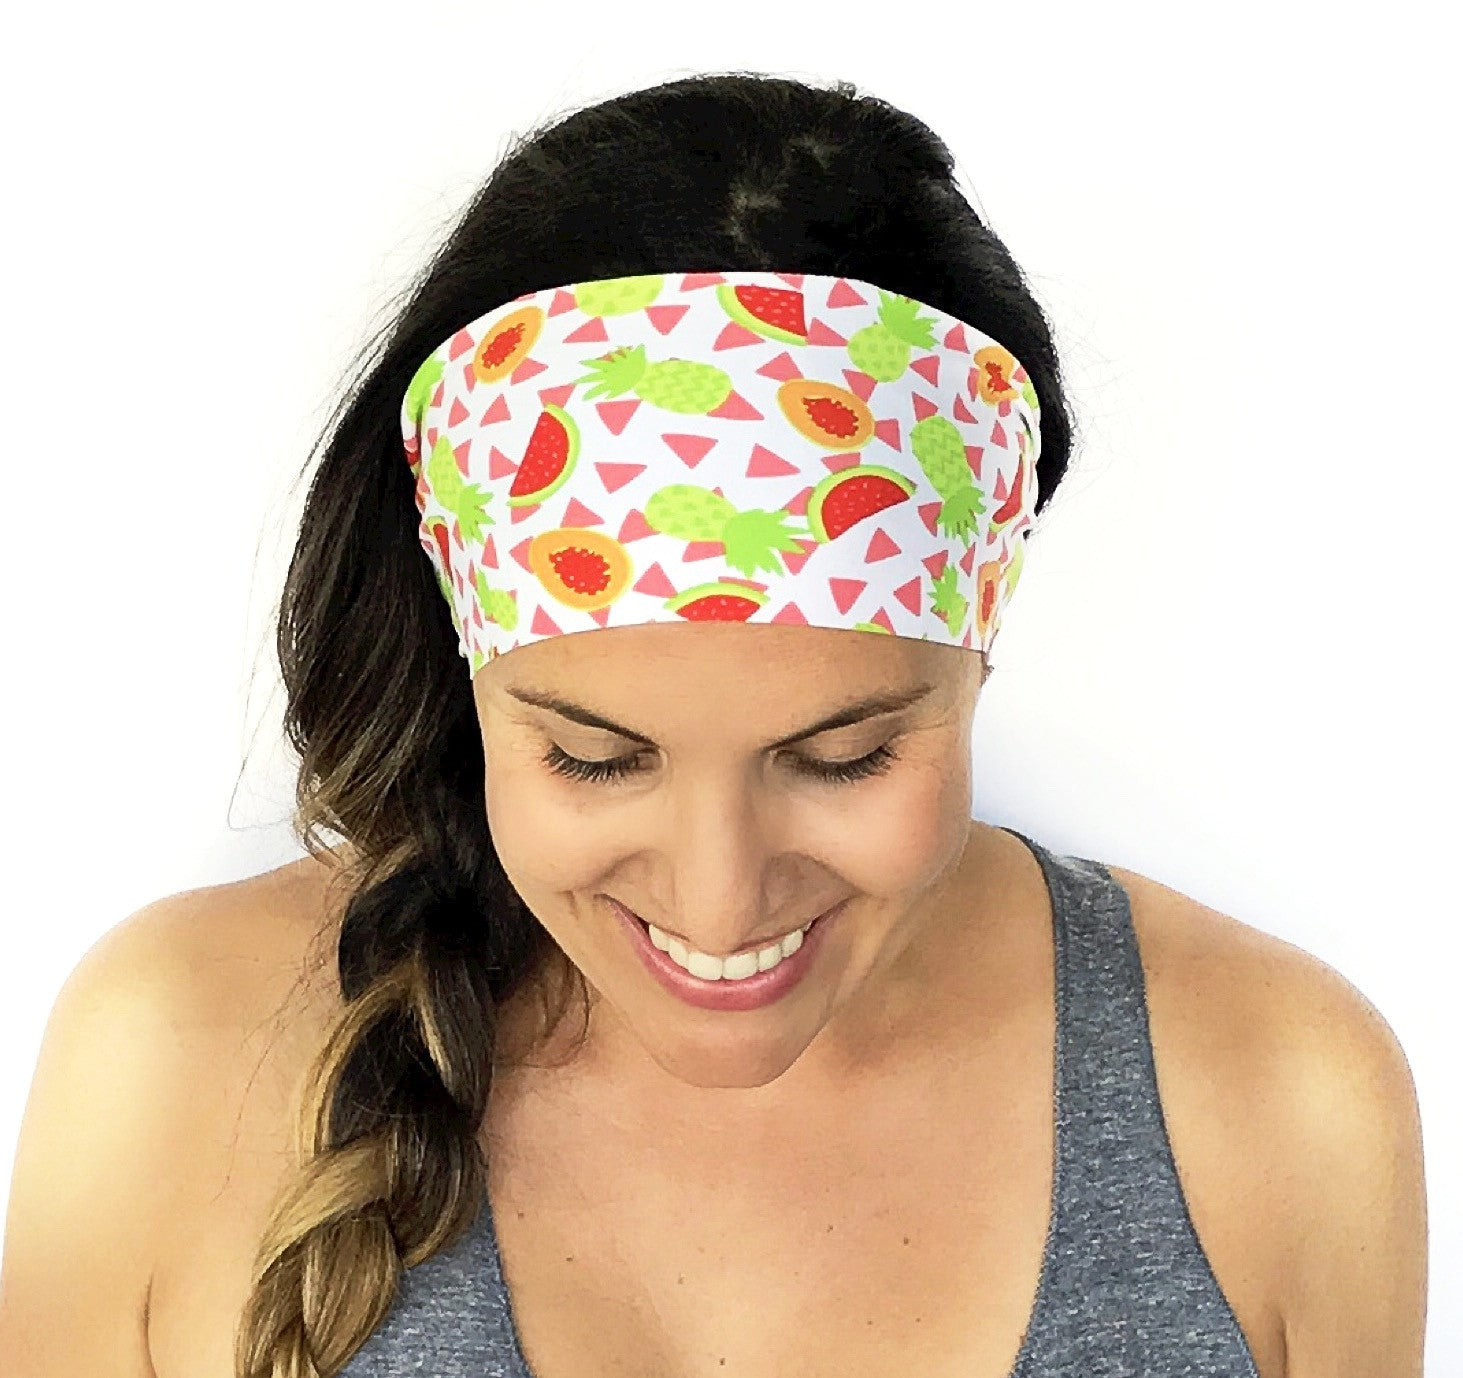 Tropical Smoothie Workout Headband